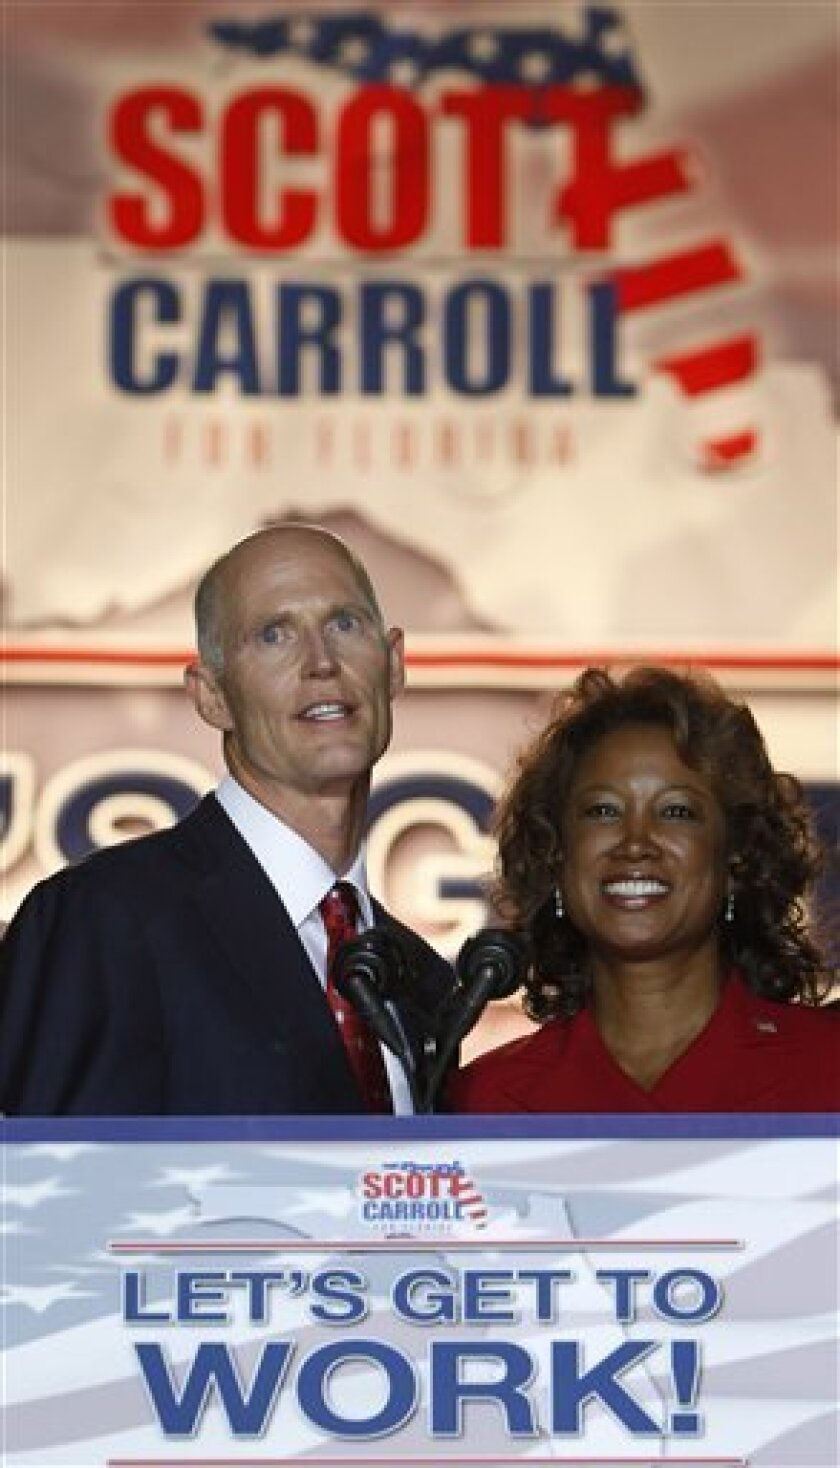 Florida Republican gubernatorial candidate Rick Scott, left, and his running mate Florida Rep. Jennifer Carroll, R-Jacksonville, thank supporters in the early morning hours of Wednesday, Nov. 3, 2010 in Fort Lauderdale, Fla. (AP Photo/Wilfredo Lee)